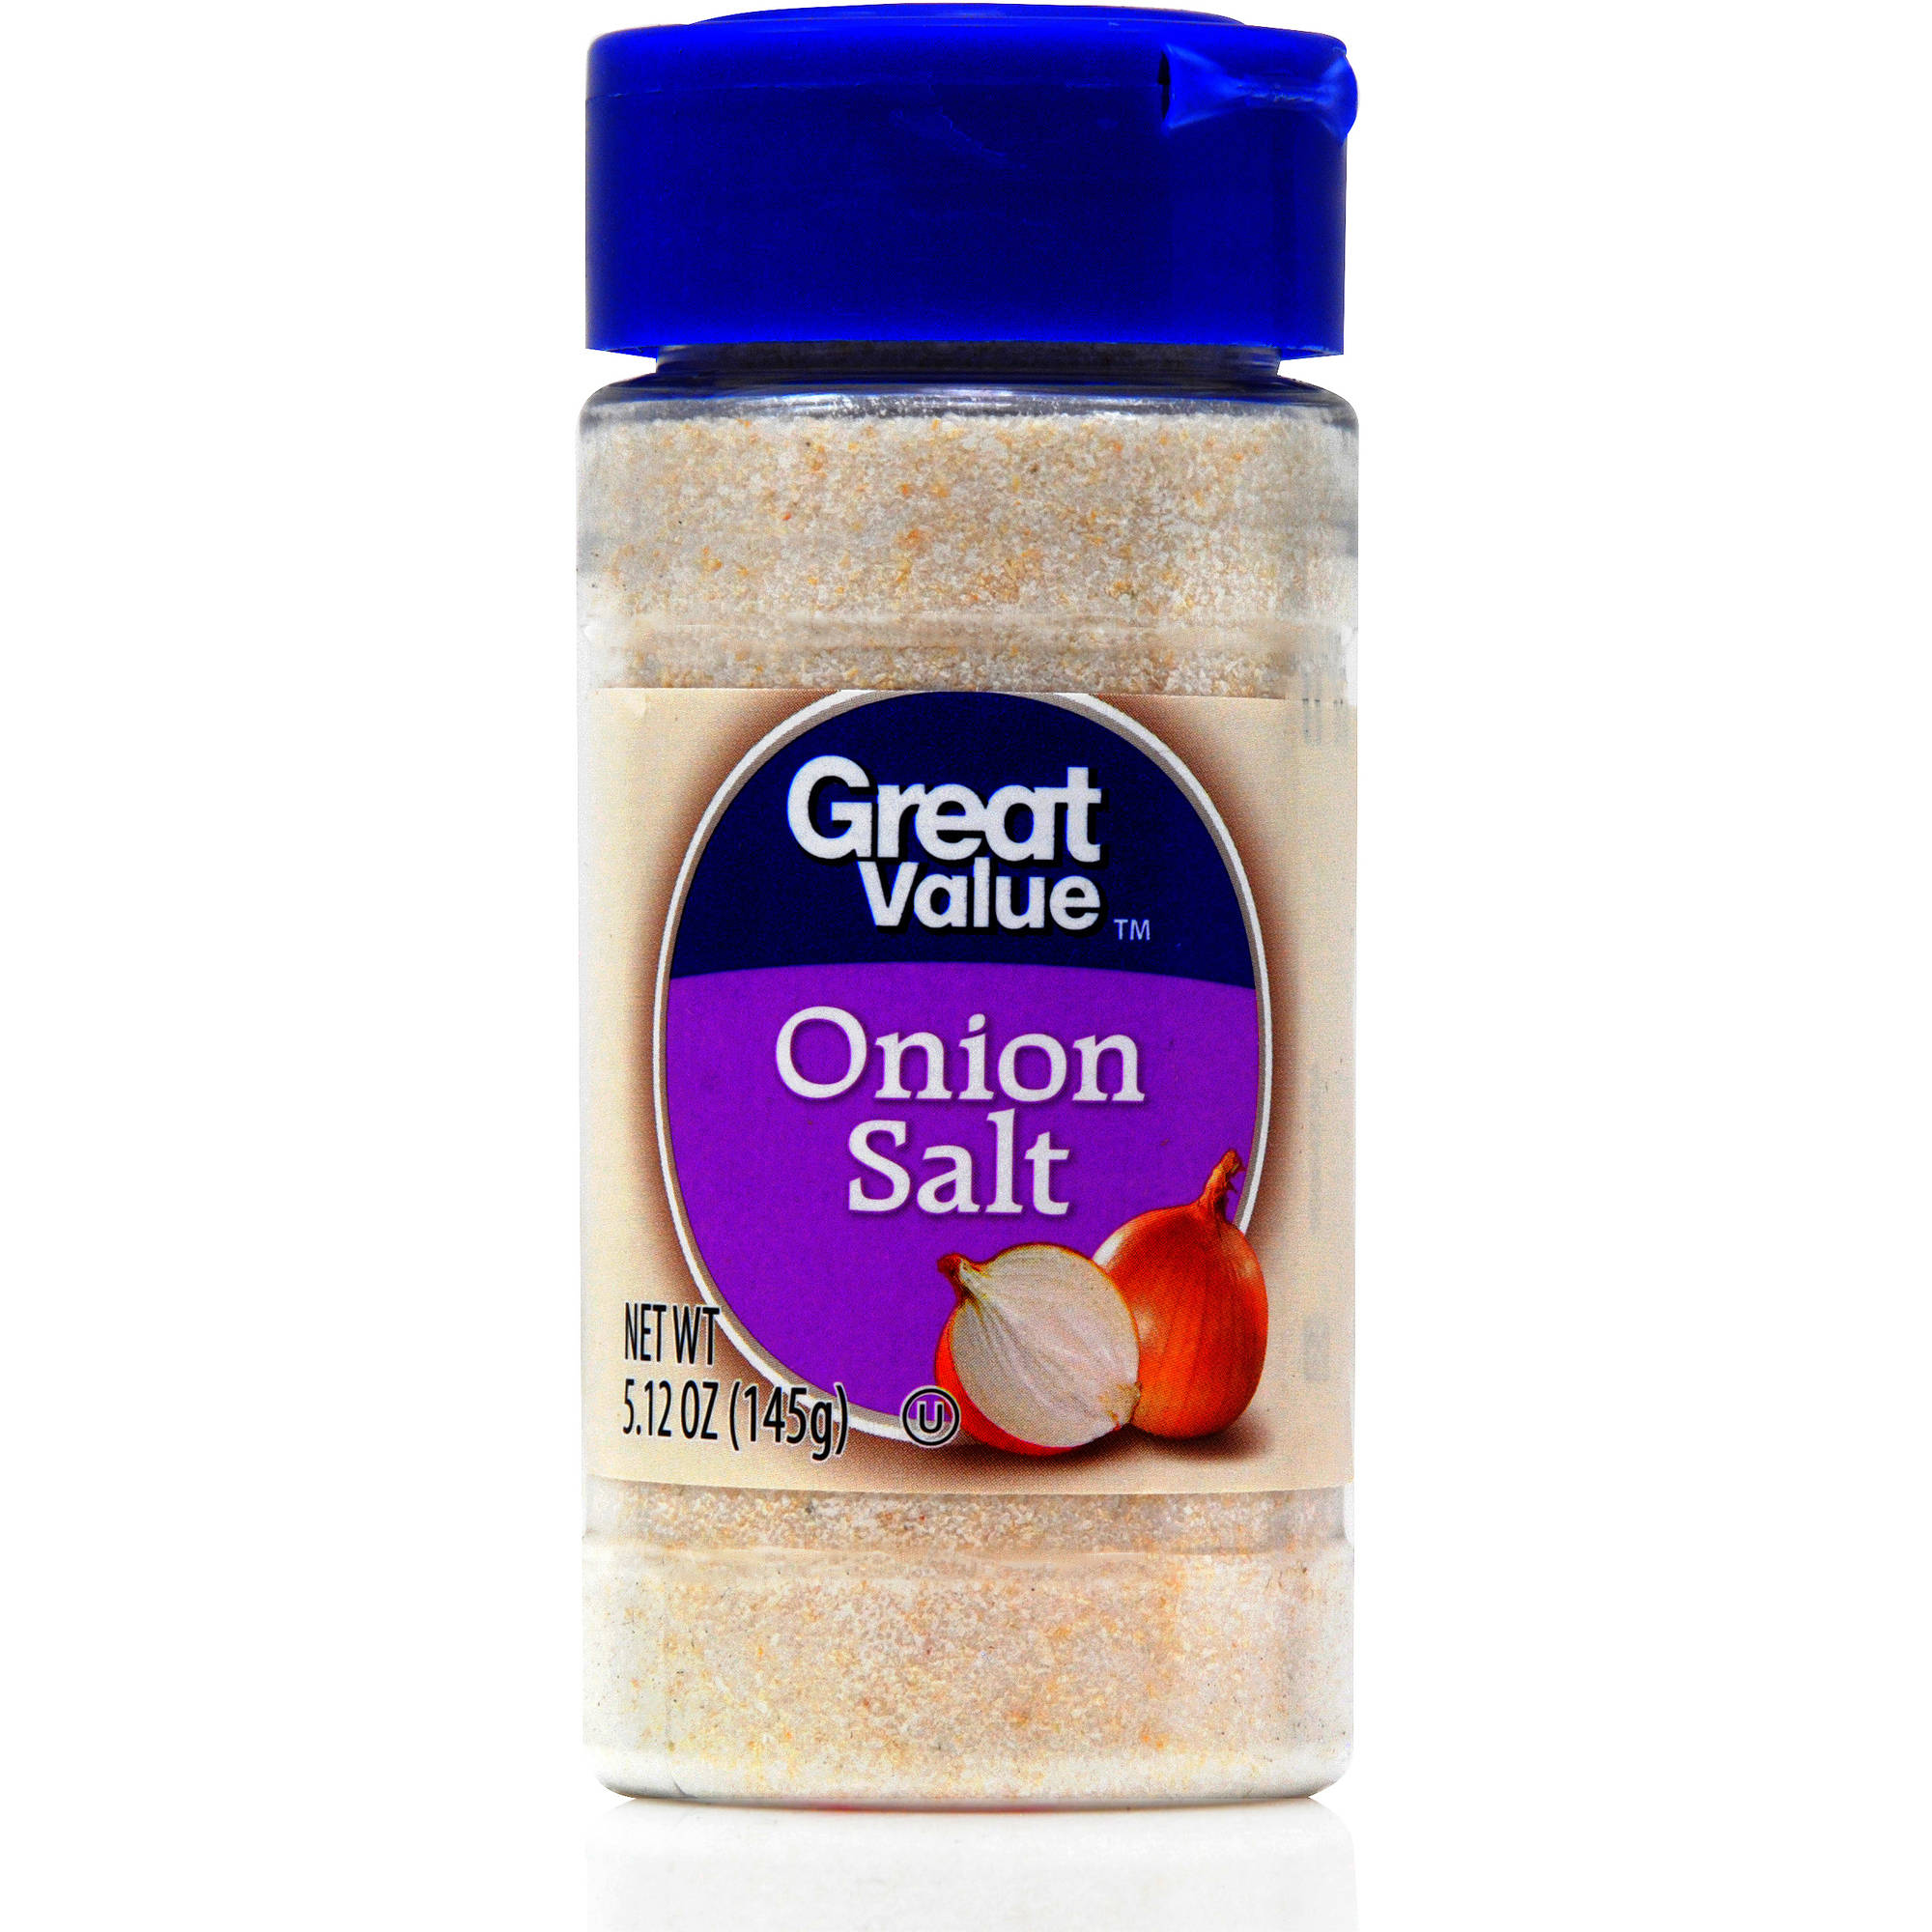 Great Value Onion Salt, 5.12 oz by Generic